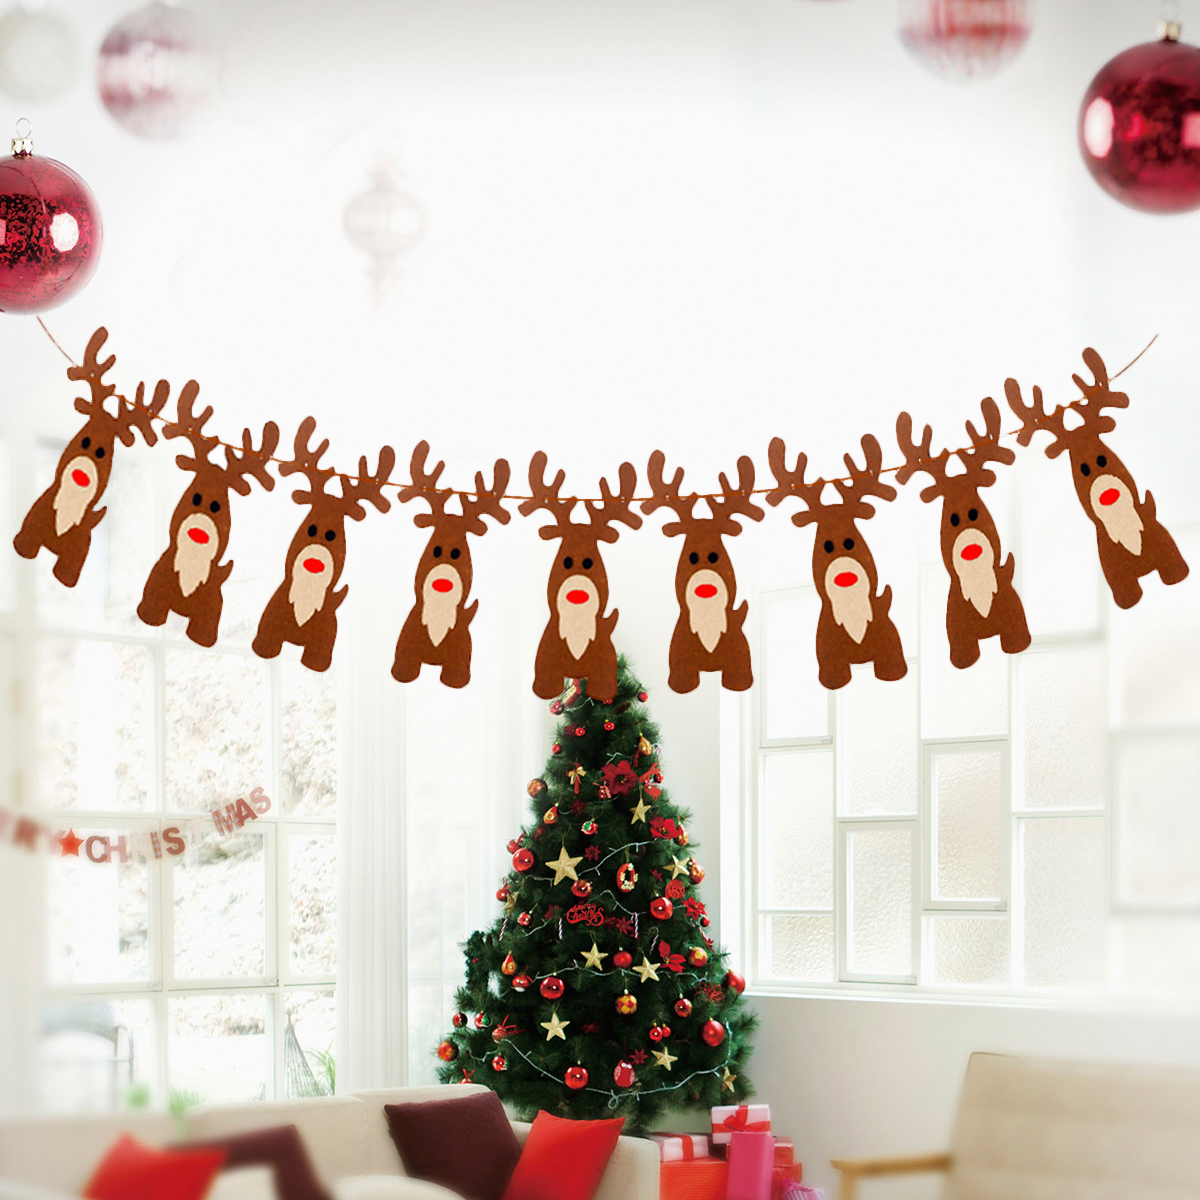 Christmas Banners.Us 2 7 29 Off 1pc Christmas Banners Non Woven Xmas Tree Elk Design Hanging Bunting Garlands Ornaments Flags Banners For Home Christmas Party In